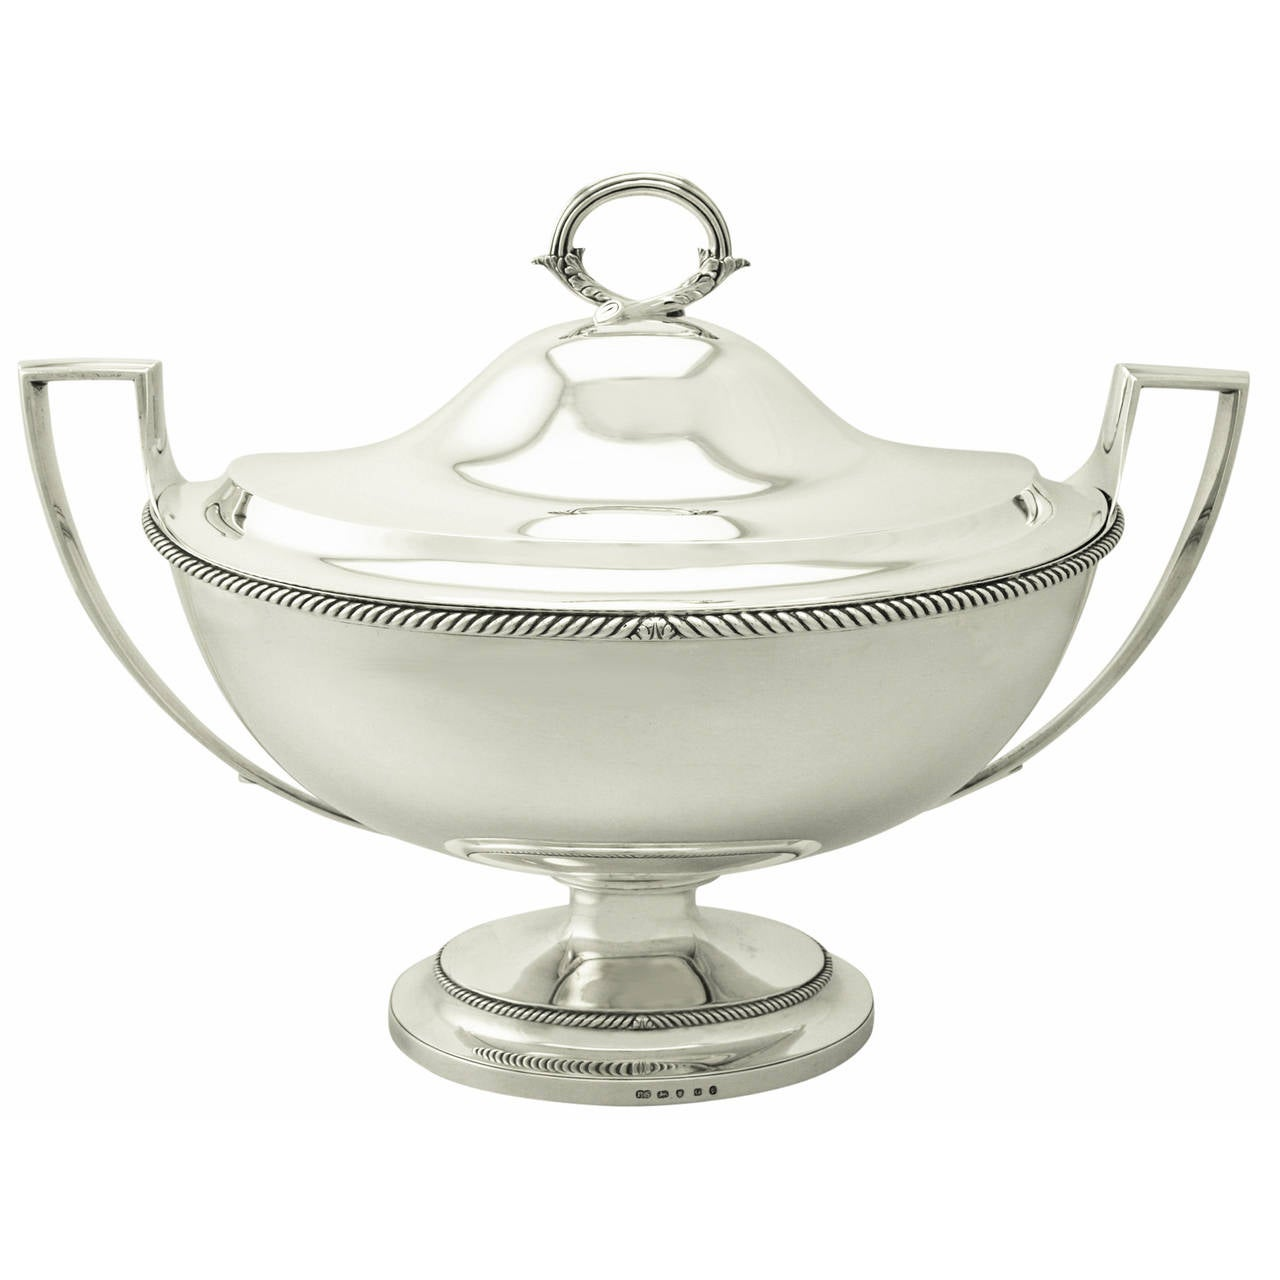 1800s Antique George III Adams Style Sterling Silver Soup Tureen by Paul Storr